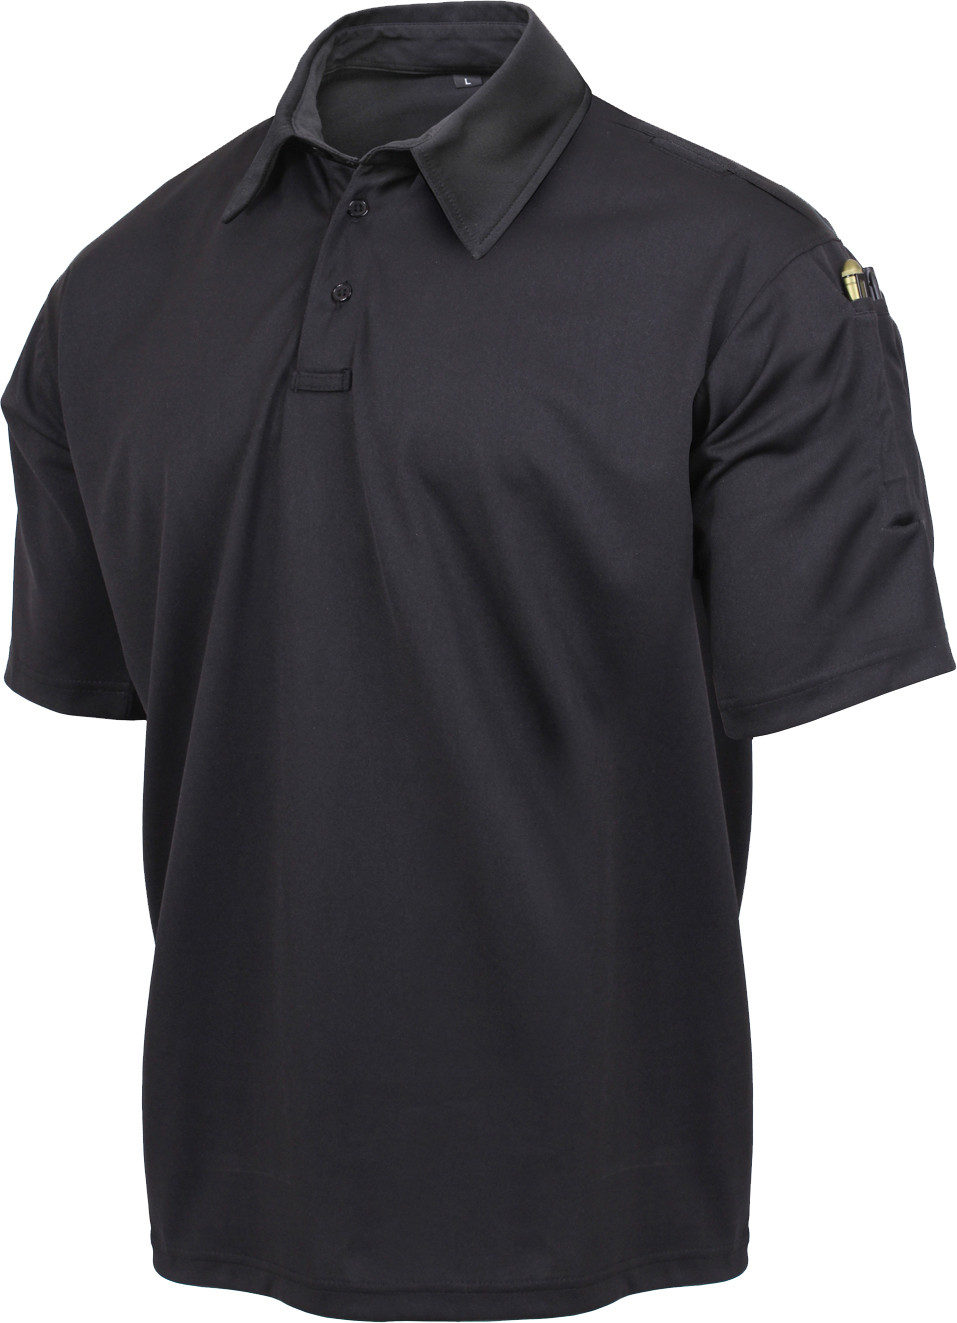 Black Moisture Wicking Tactical Performance Polo Shirt